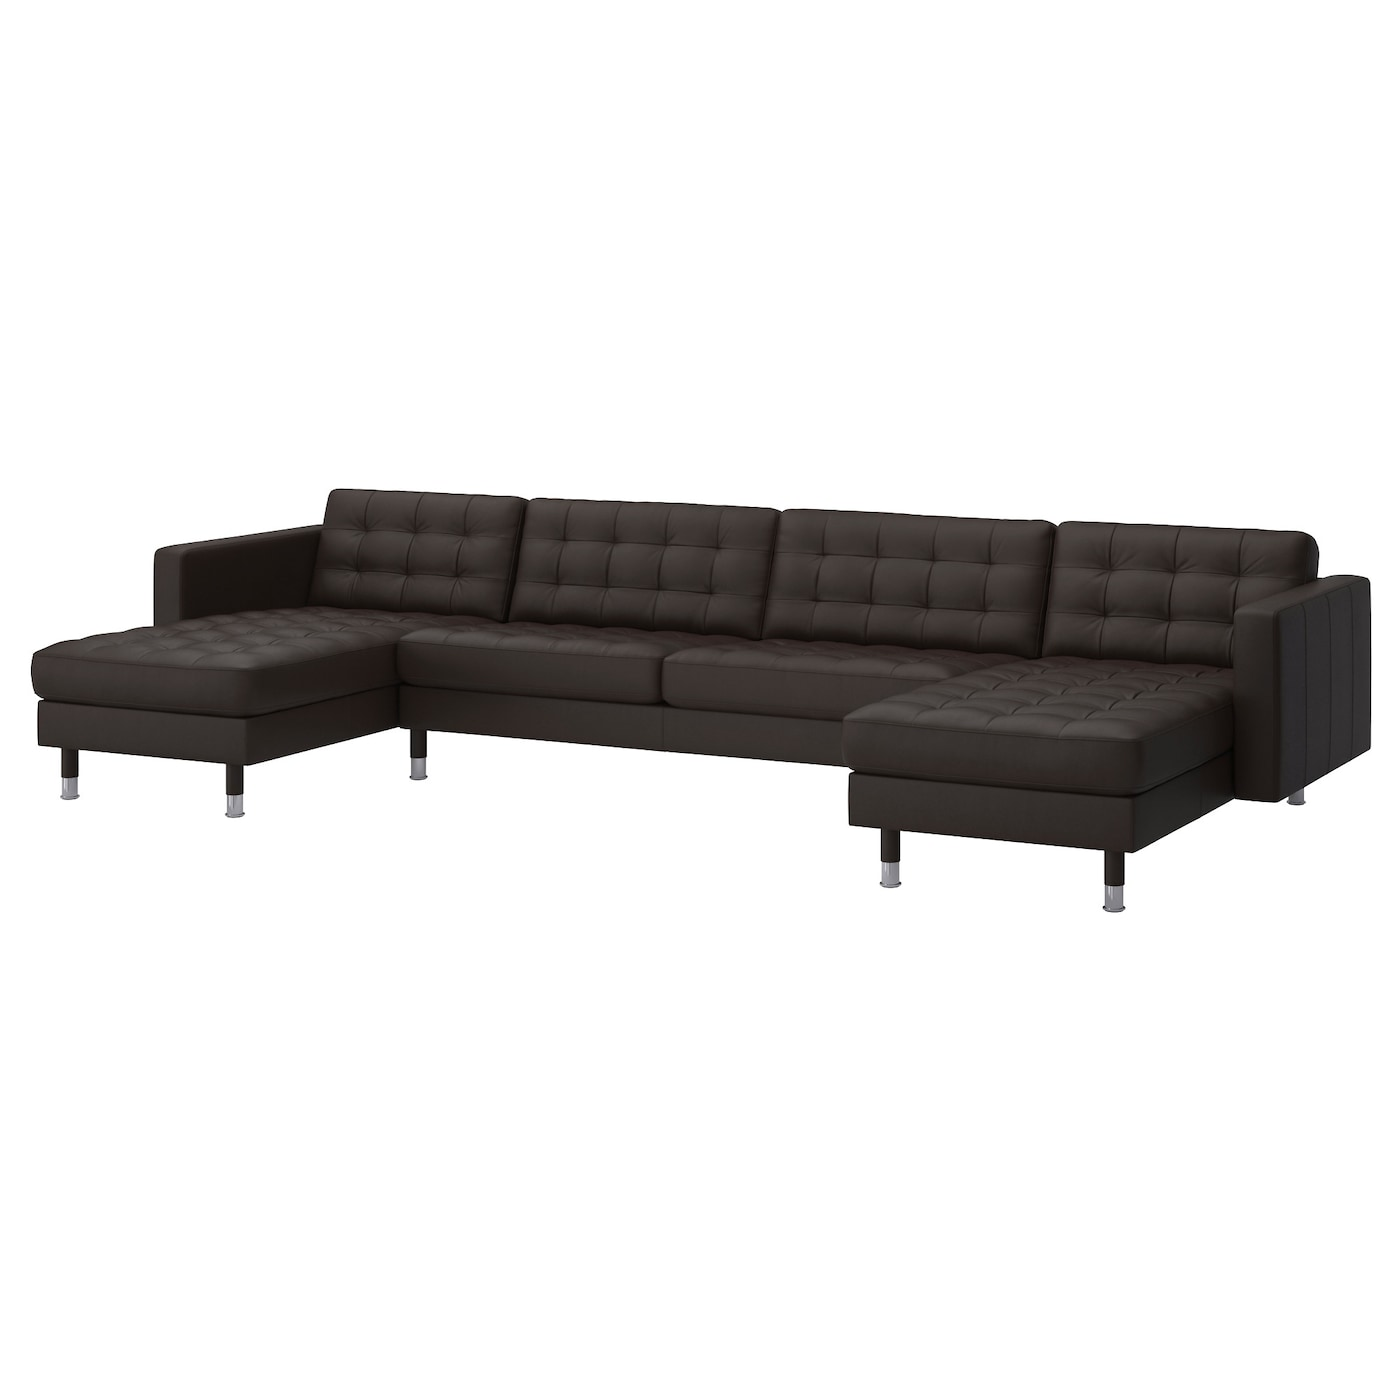 landskrona 2 chaise longues three seat sofa grann bomstad dark brown metal ikea. Black Bedroom Furniture Sets. Home Design Ideas